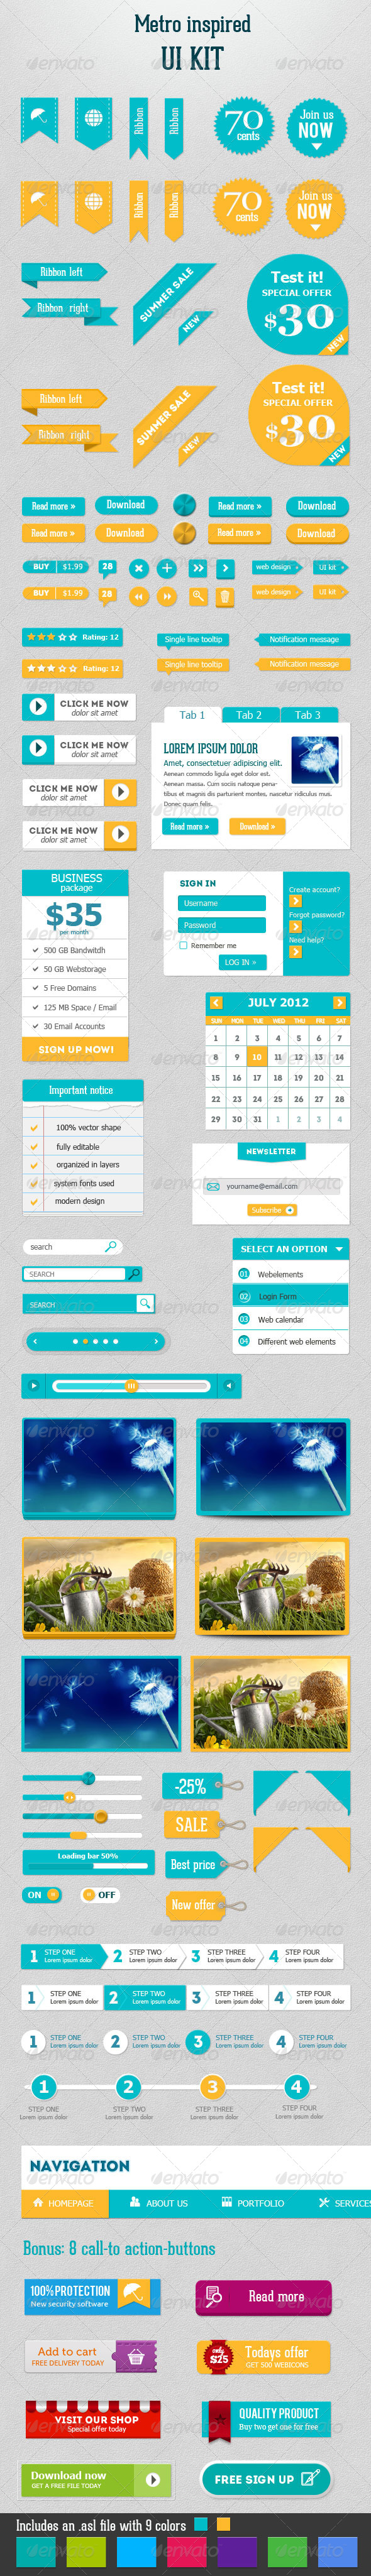 GraphicRiver Metro Inspired UI Kit 4345307